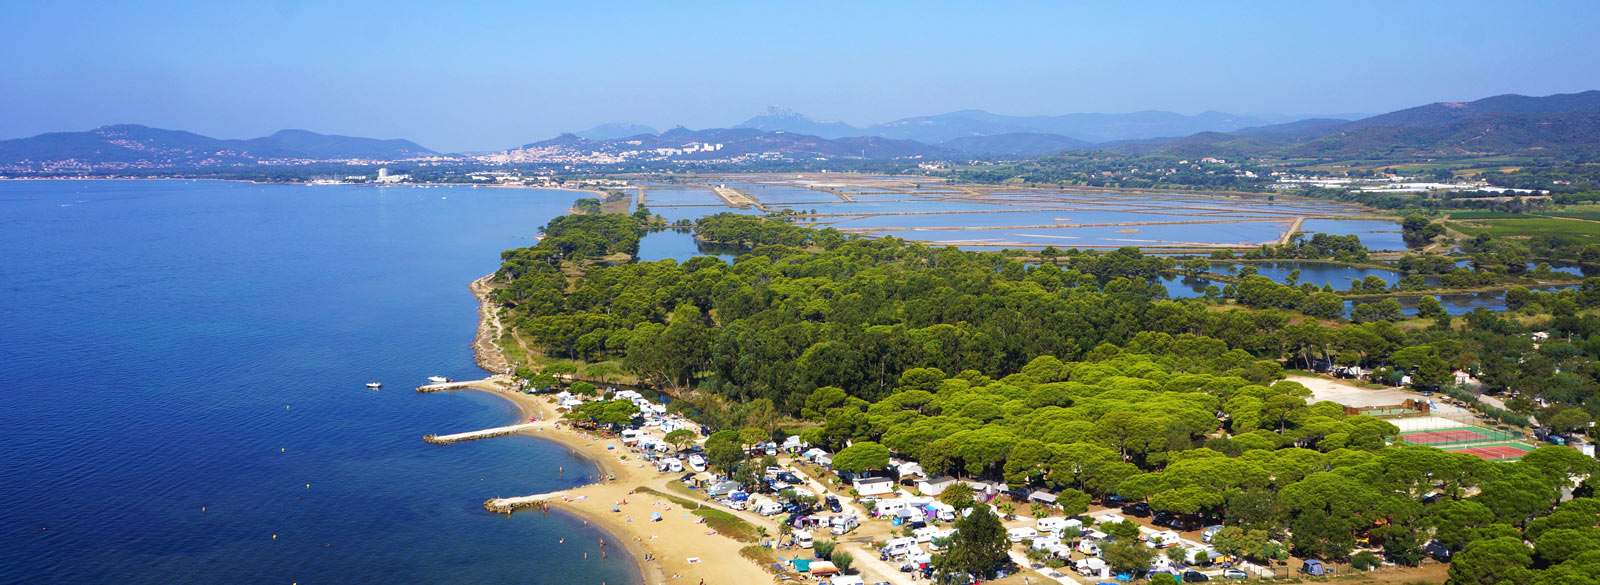 location week end massif des maures - Plage du camping